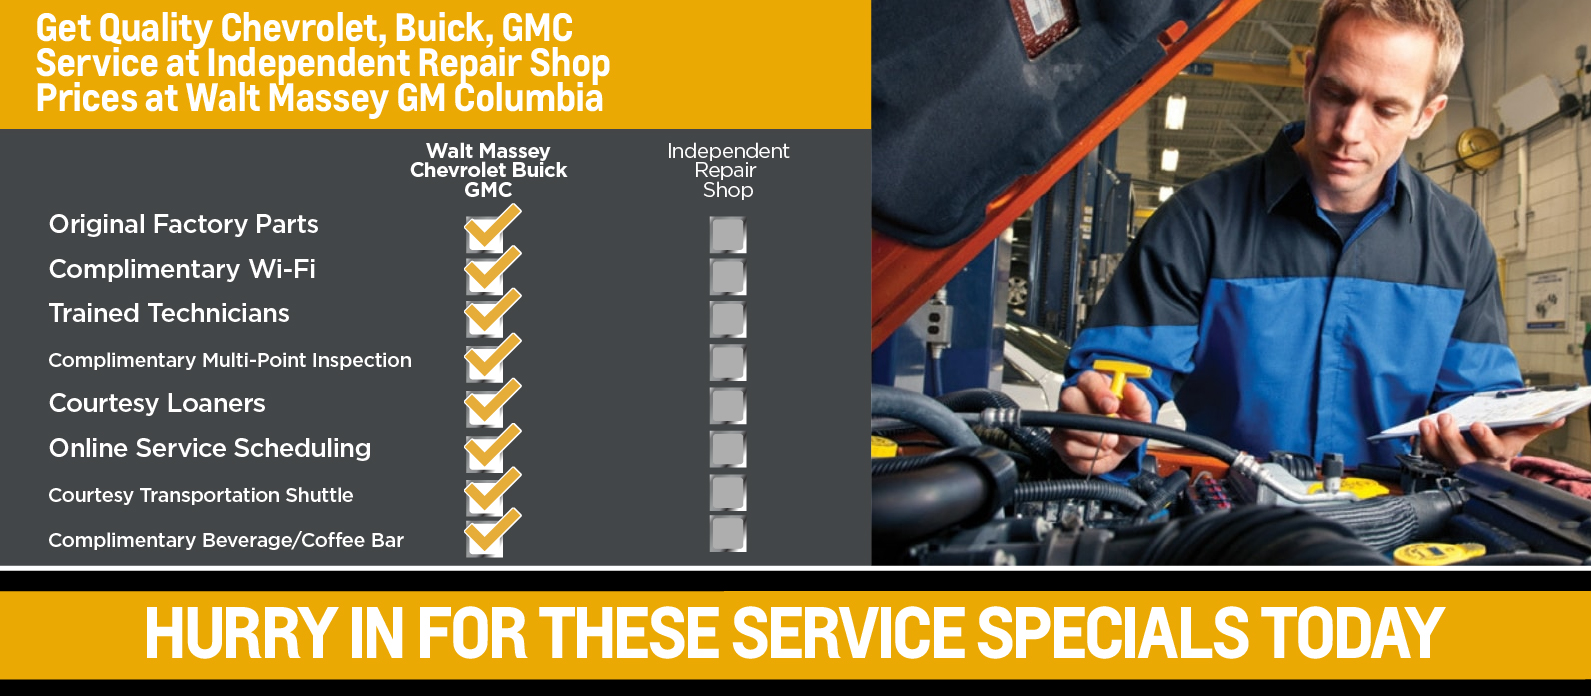 Get quality GM Columbia Service at Independent Repair Shop Prices at Walt Massey CDJR